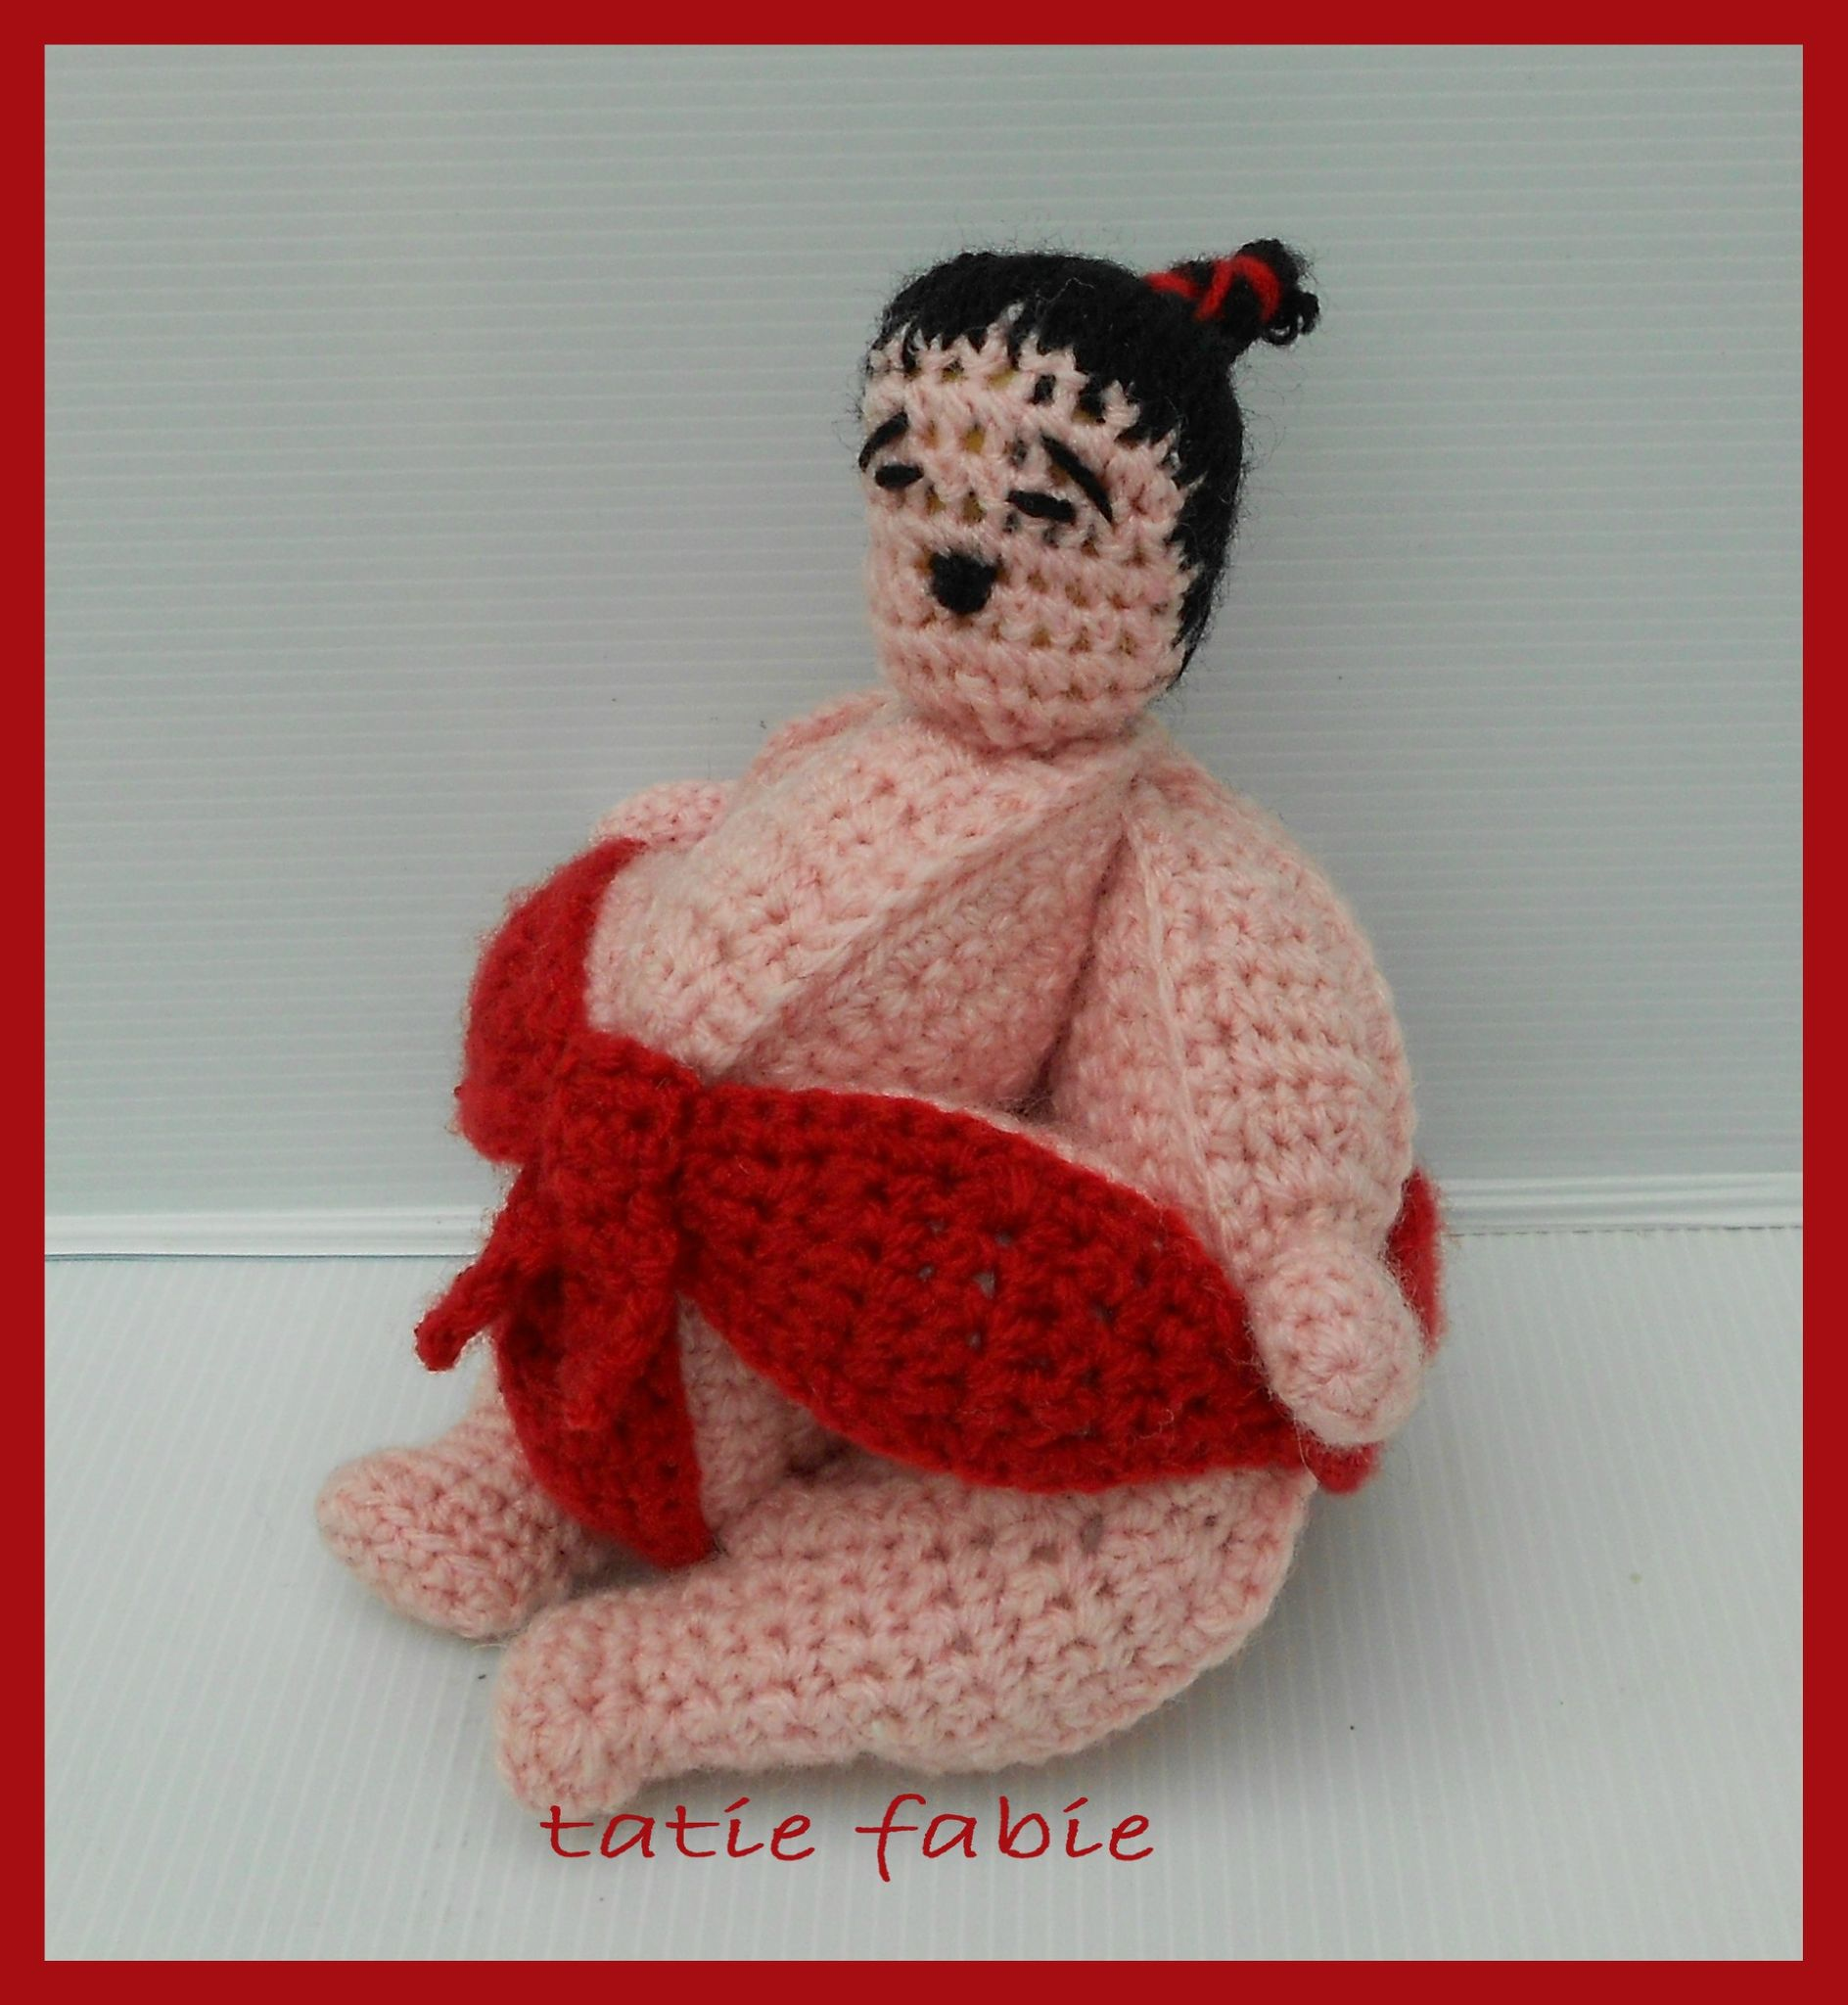 The serial crocheteuses N° 184